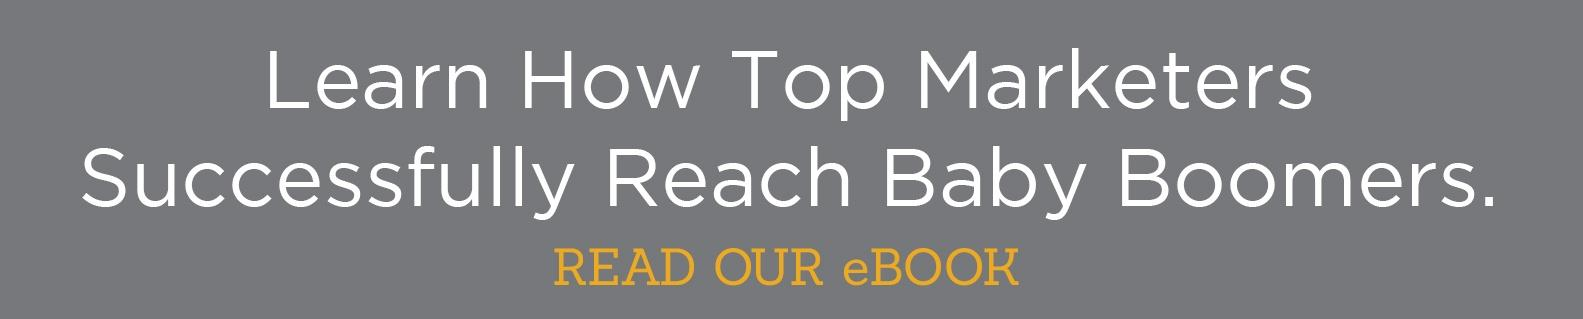 Marketing to Baby Boomers eBook